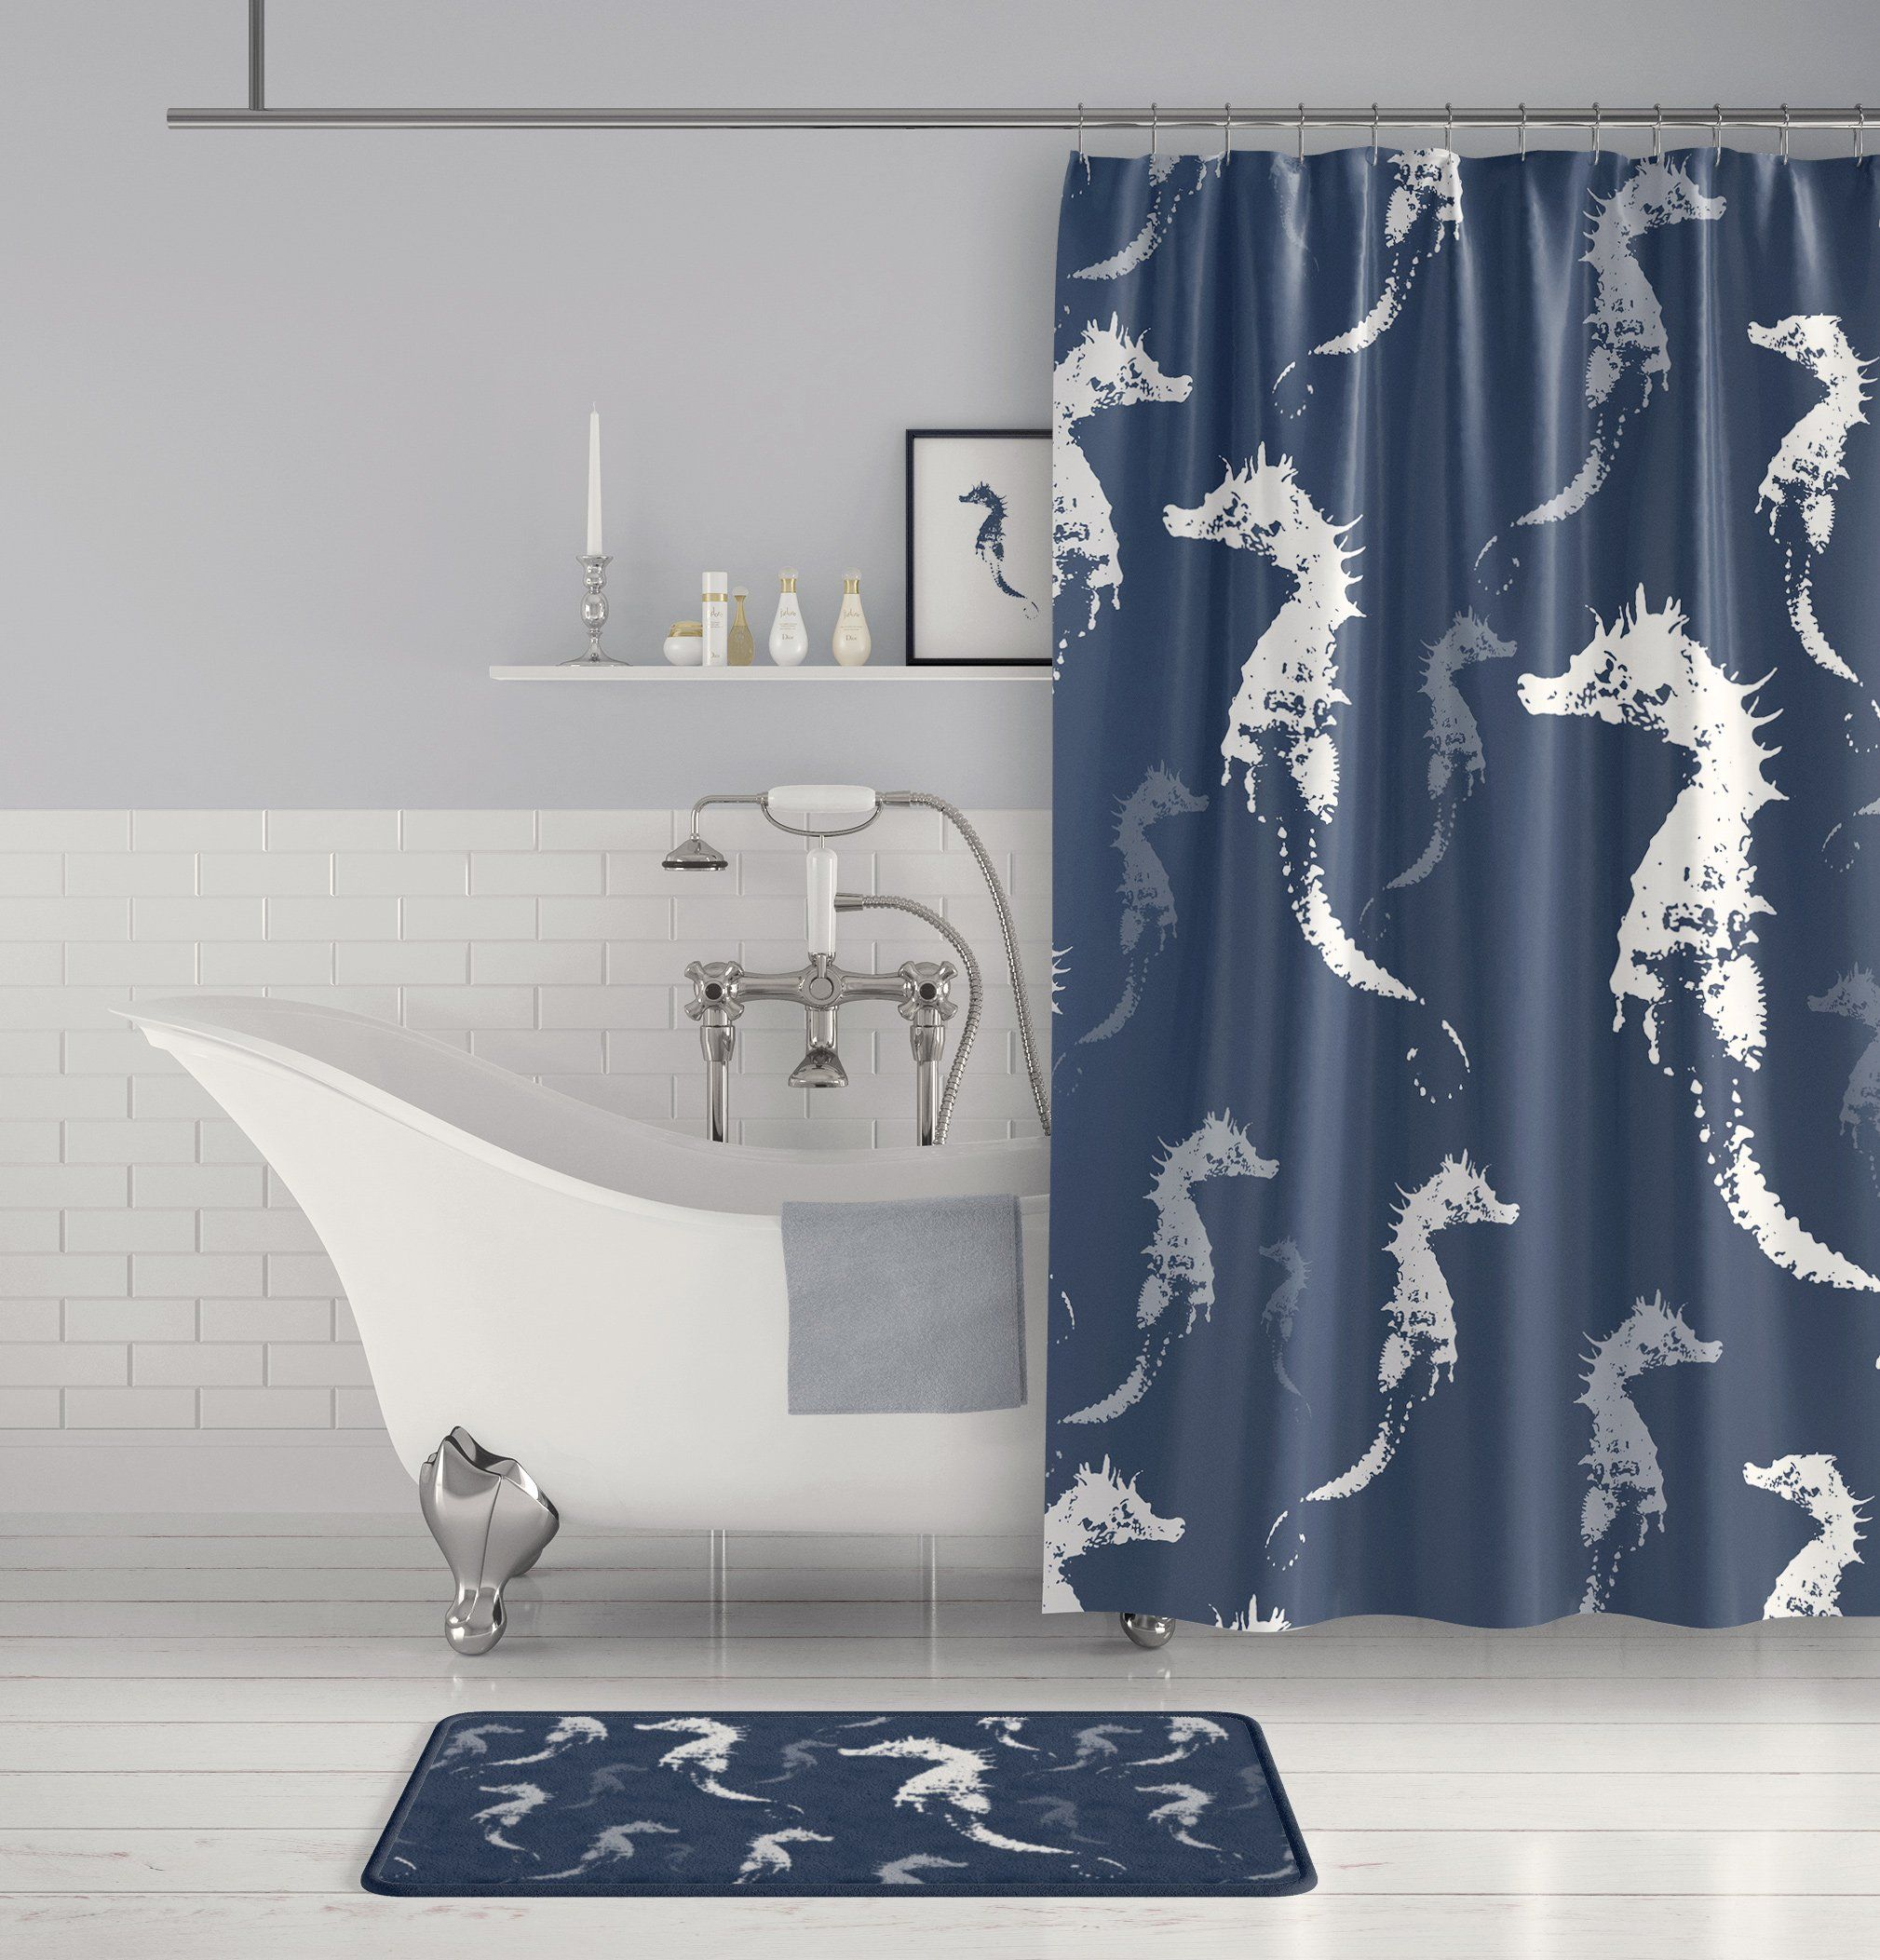 Seahorse Shower Curtain Slate Blue Gray And White For The